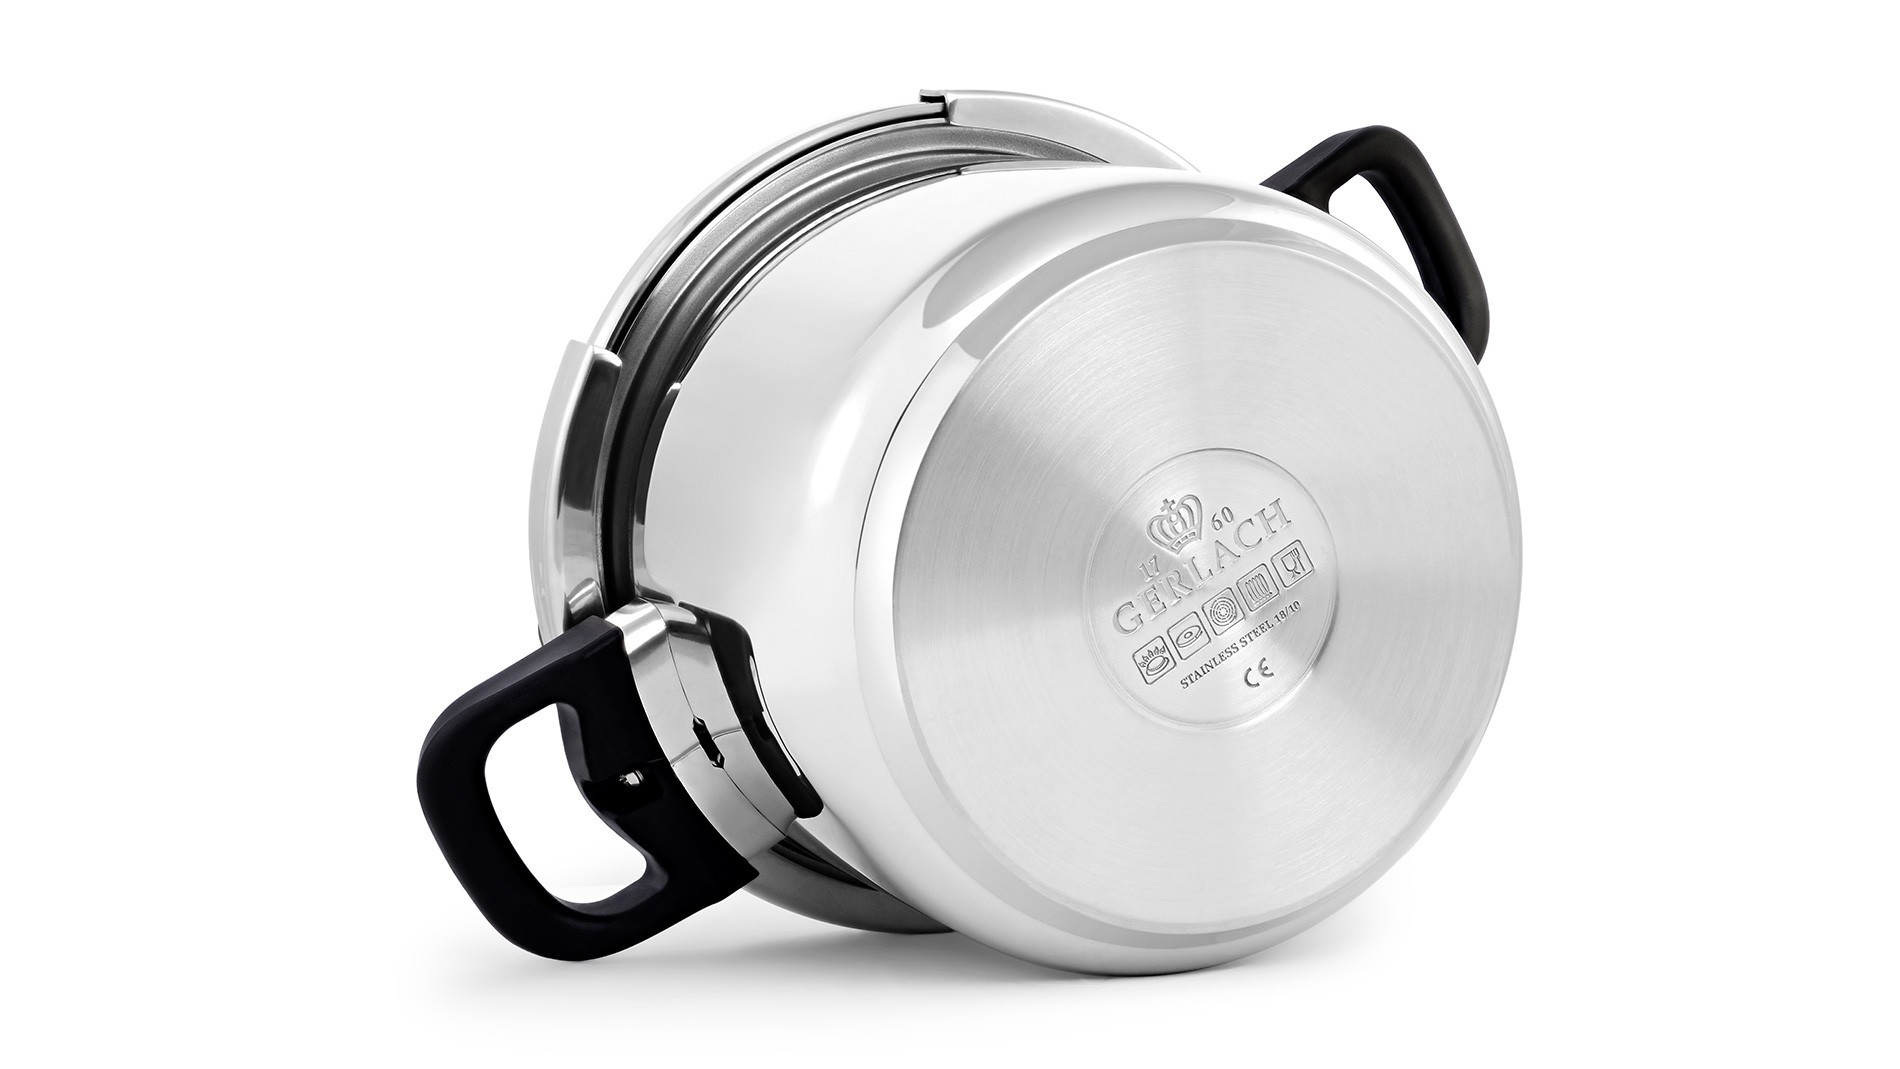 Pressure cooker with handle